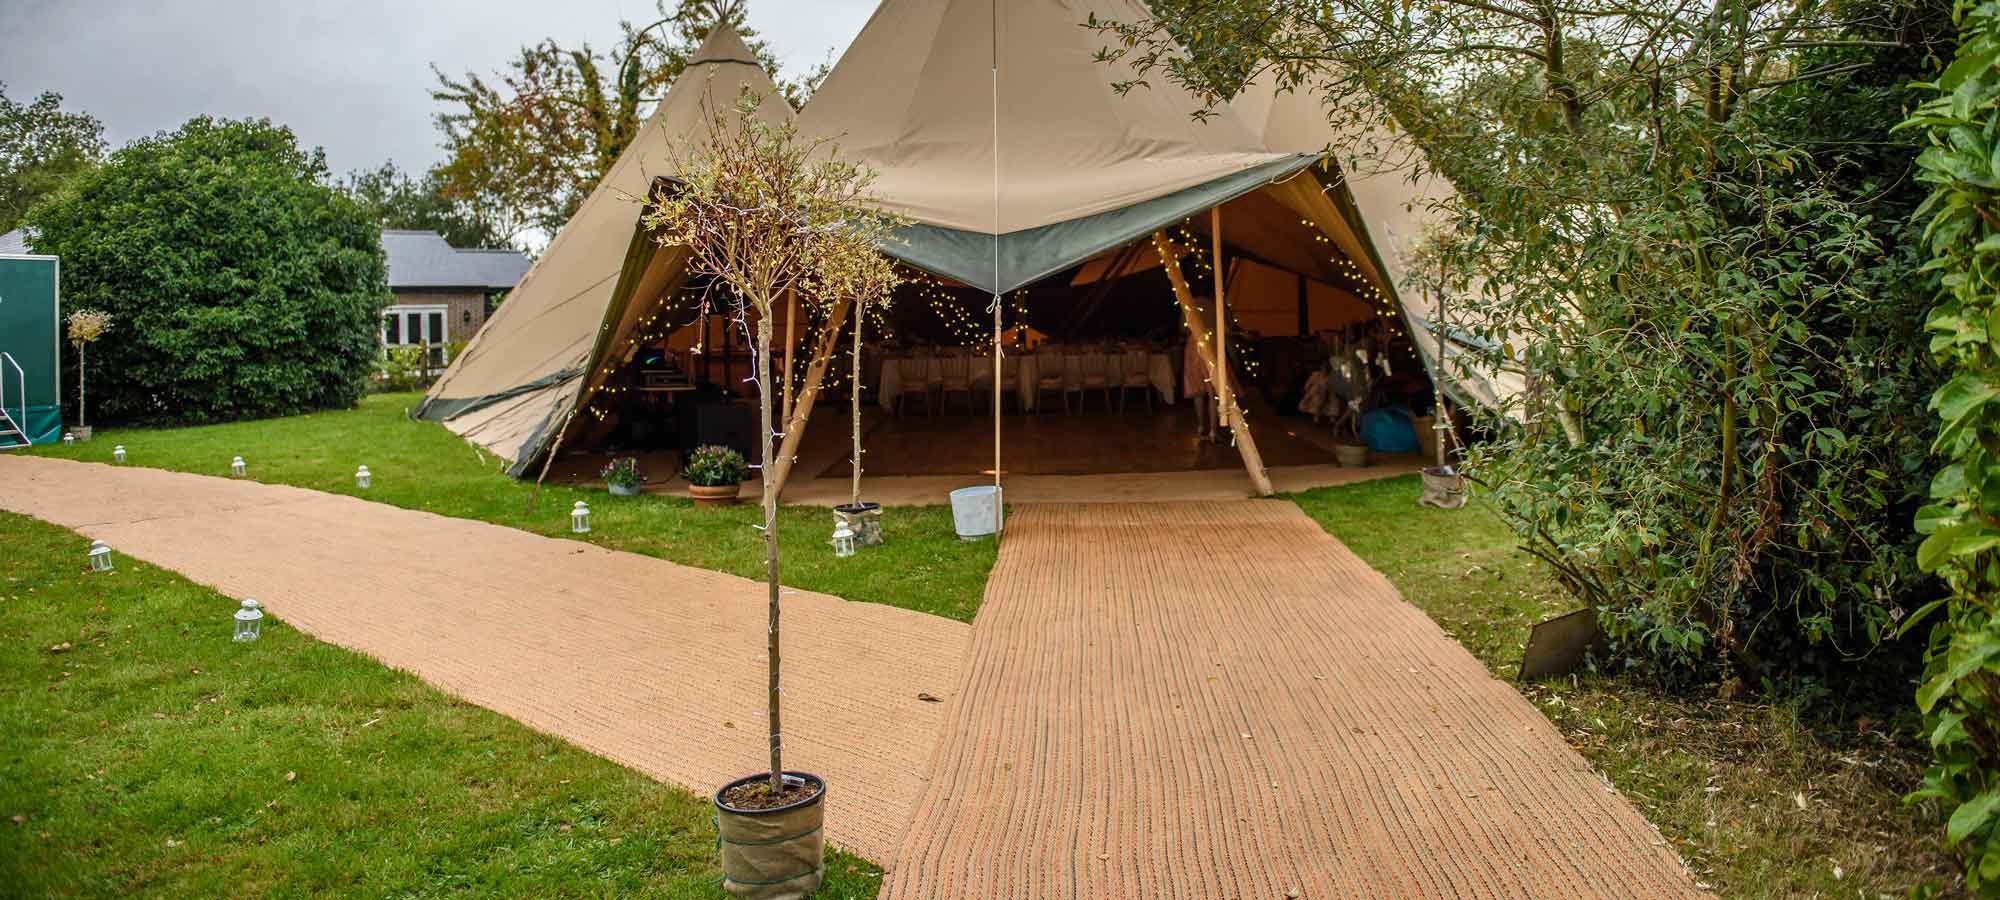 Tentipi matting - giant hat kata tents to buy